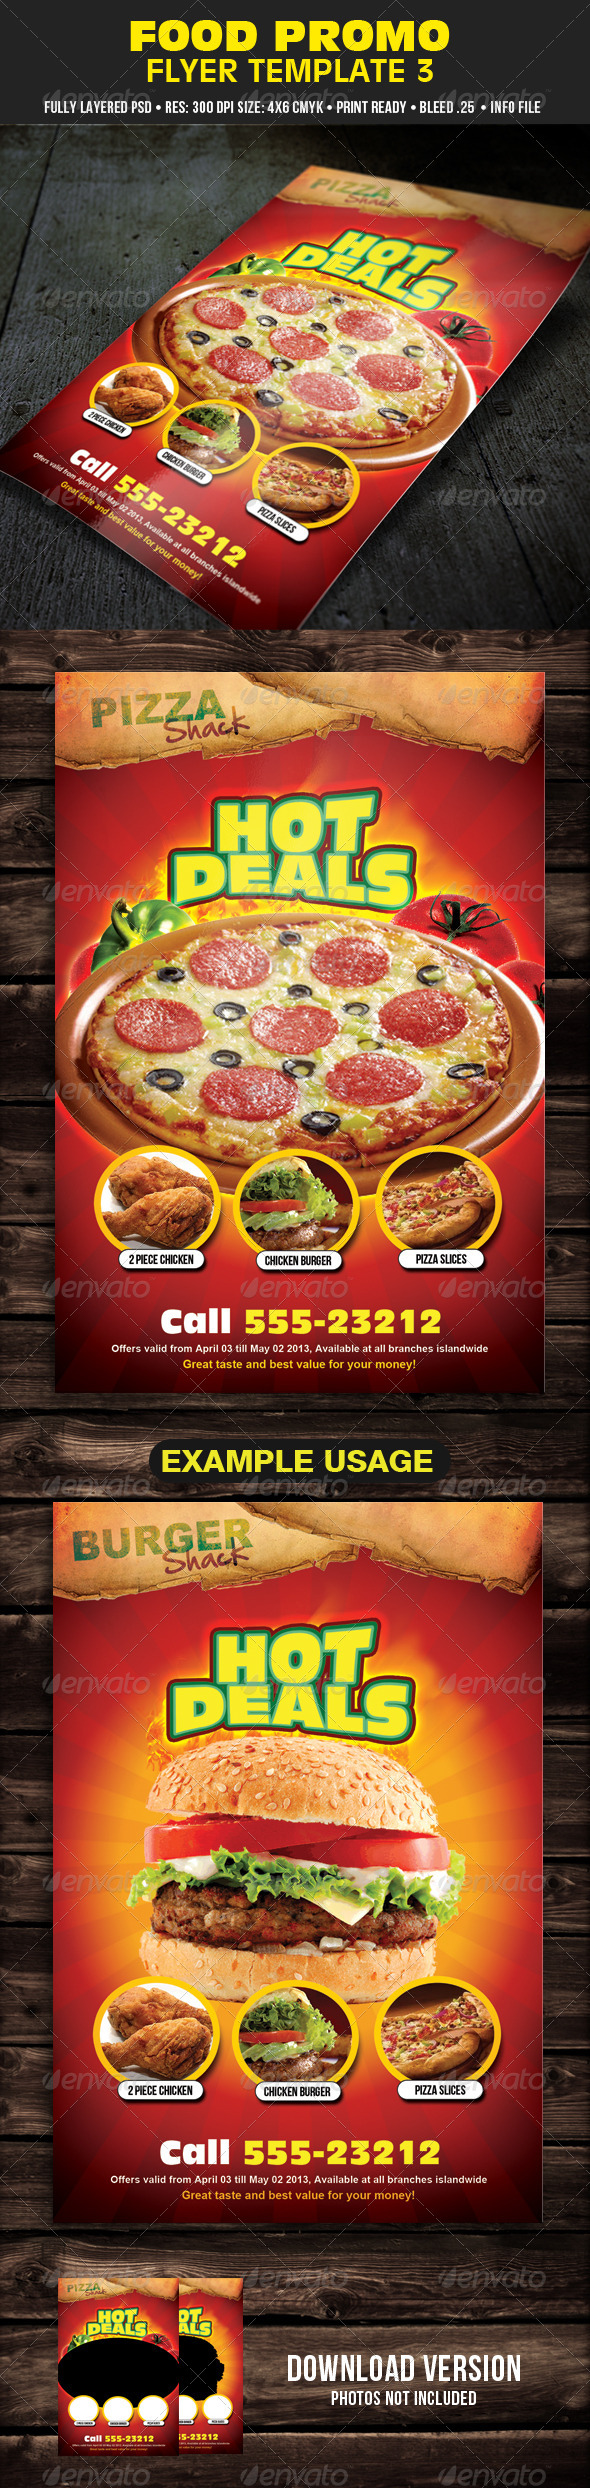 Food Promo Flyer Template 3